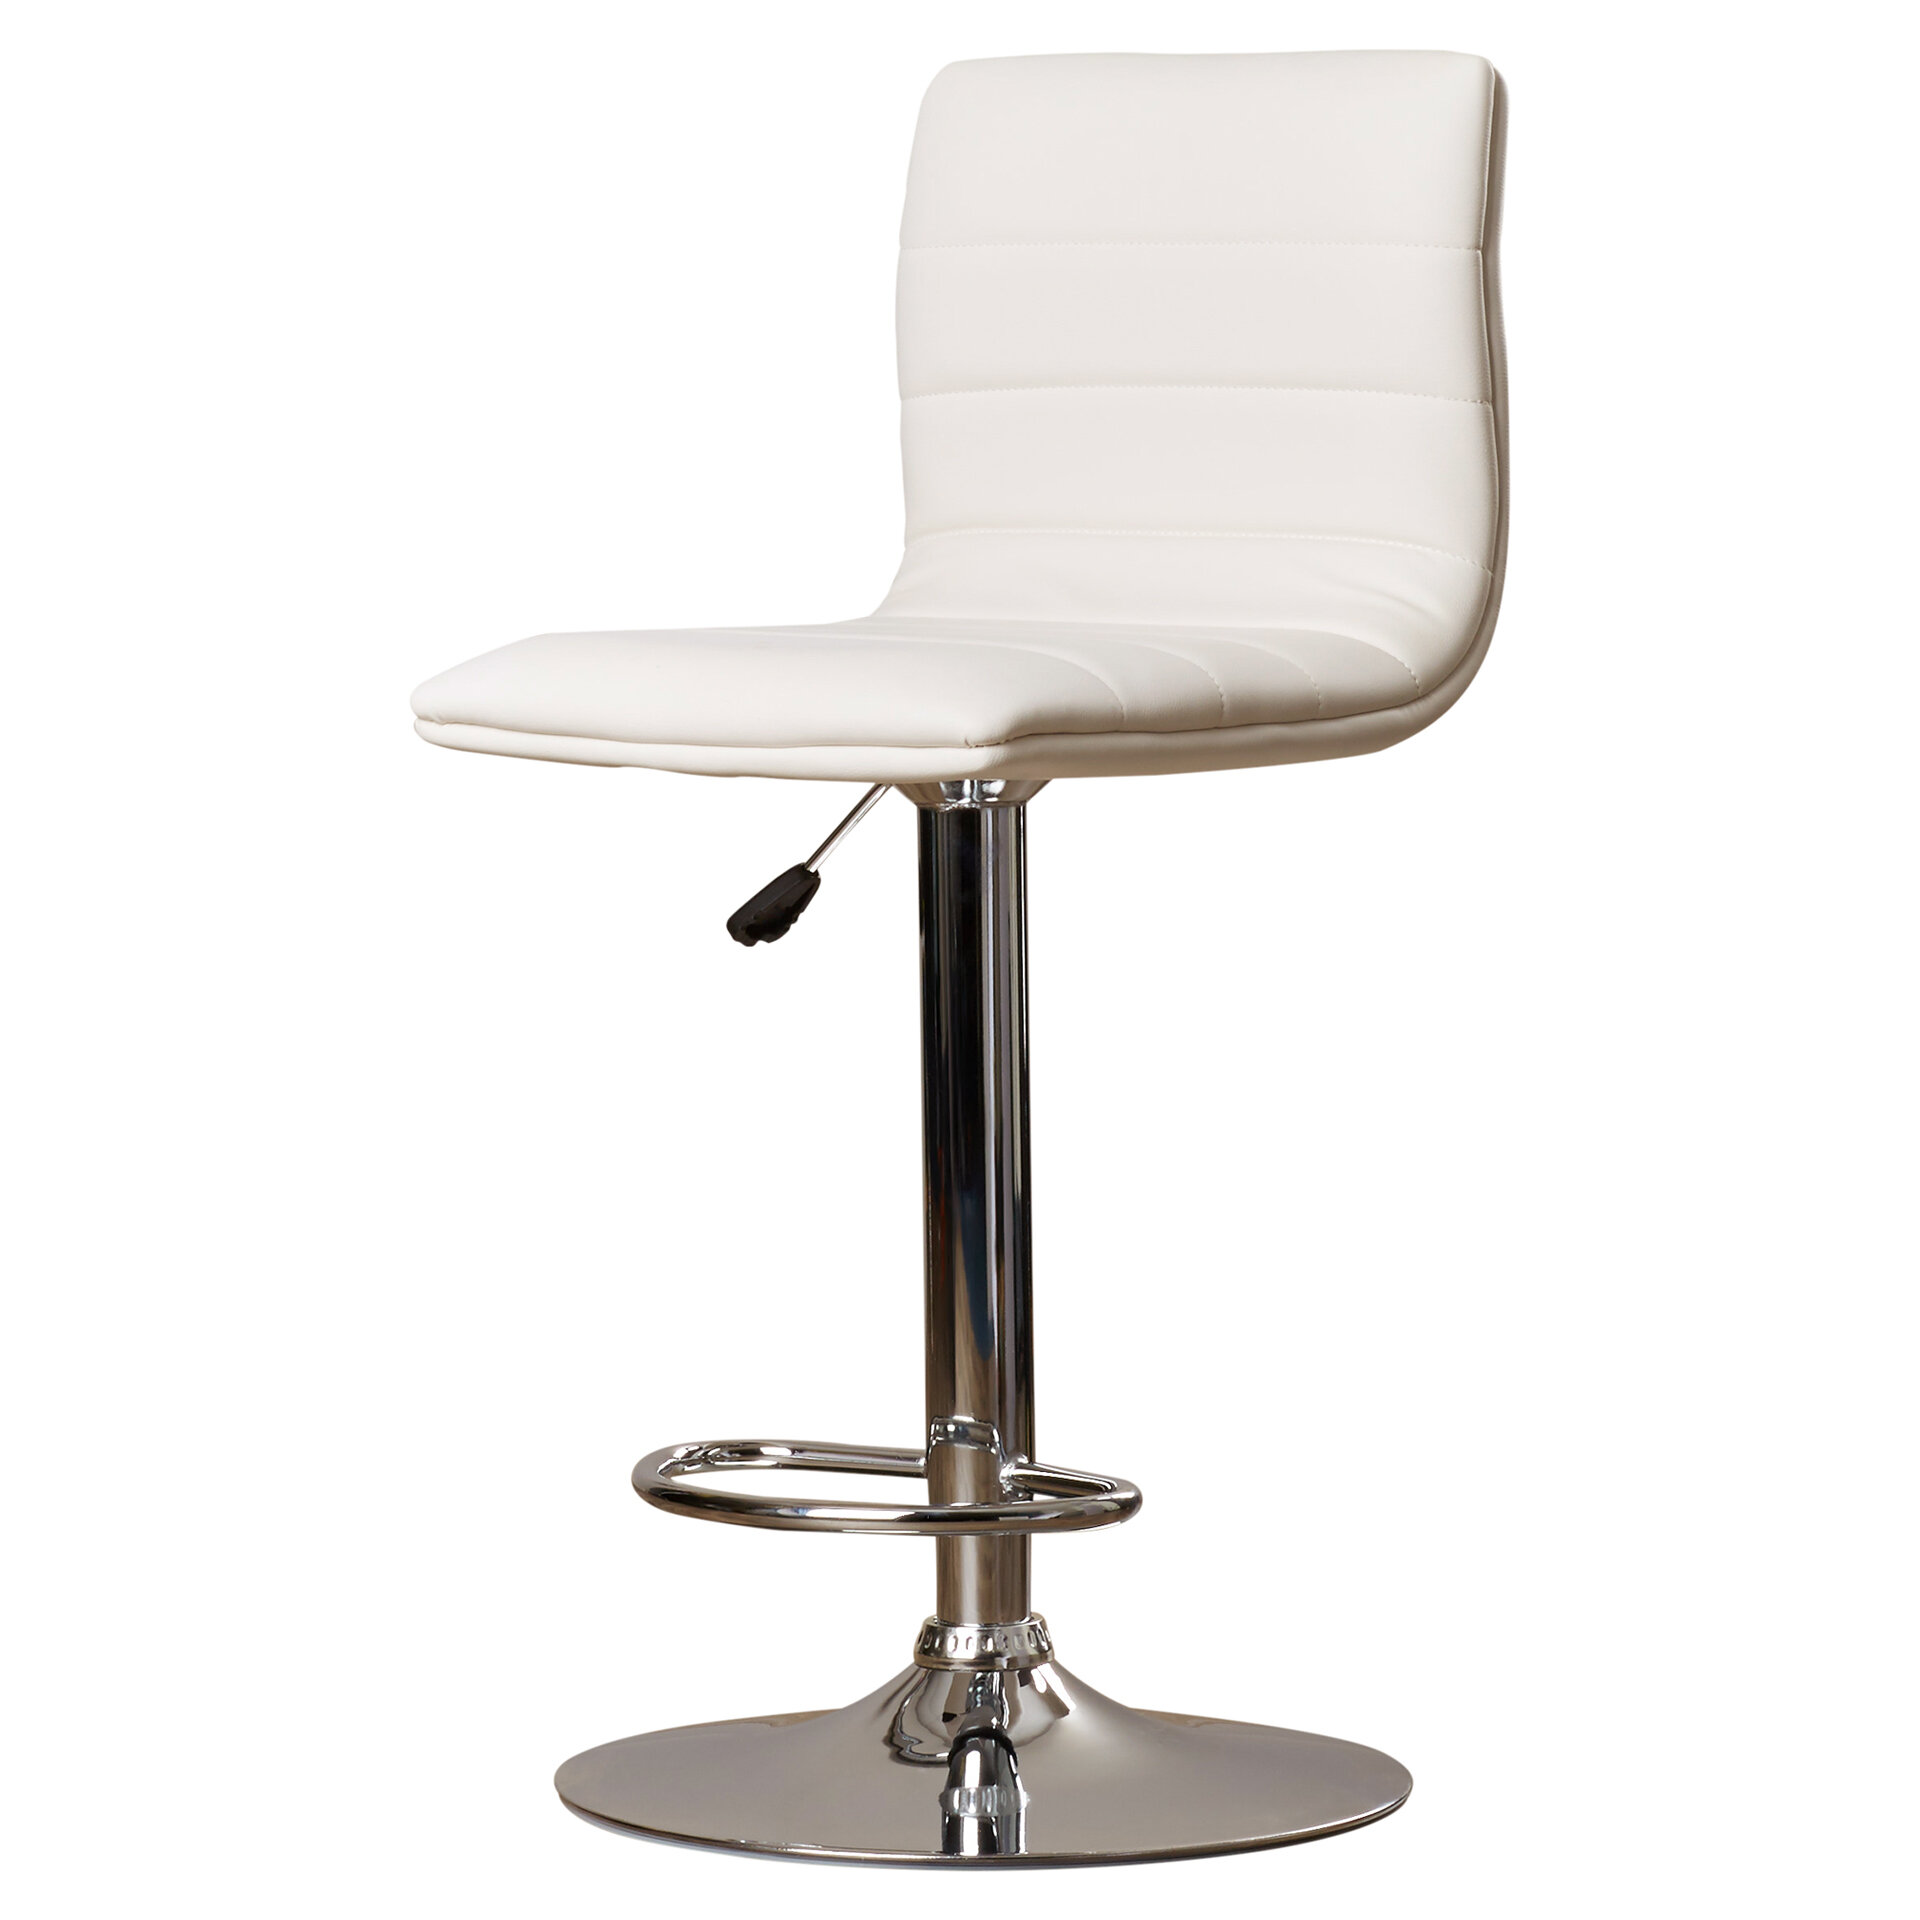 European Style Tall Chair Conference Chair Bar Stool Elegant Appearance Front Desk Receives Silver Chair Fashionable Bar Chair